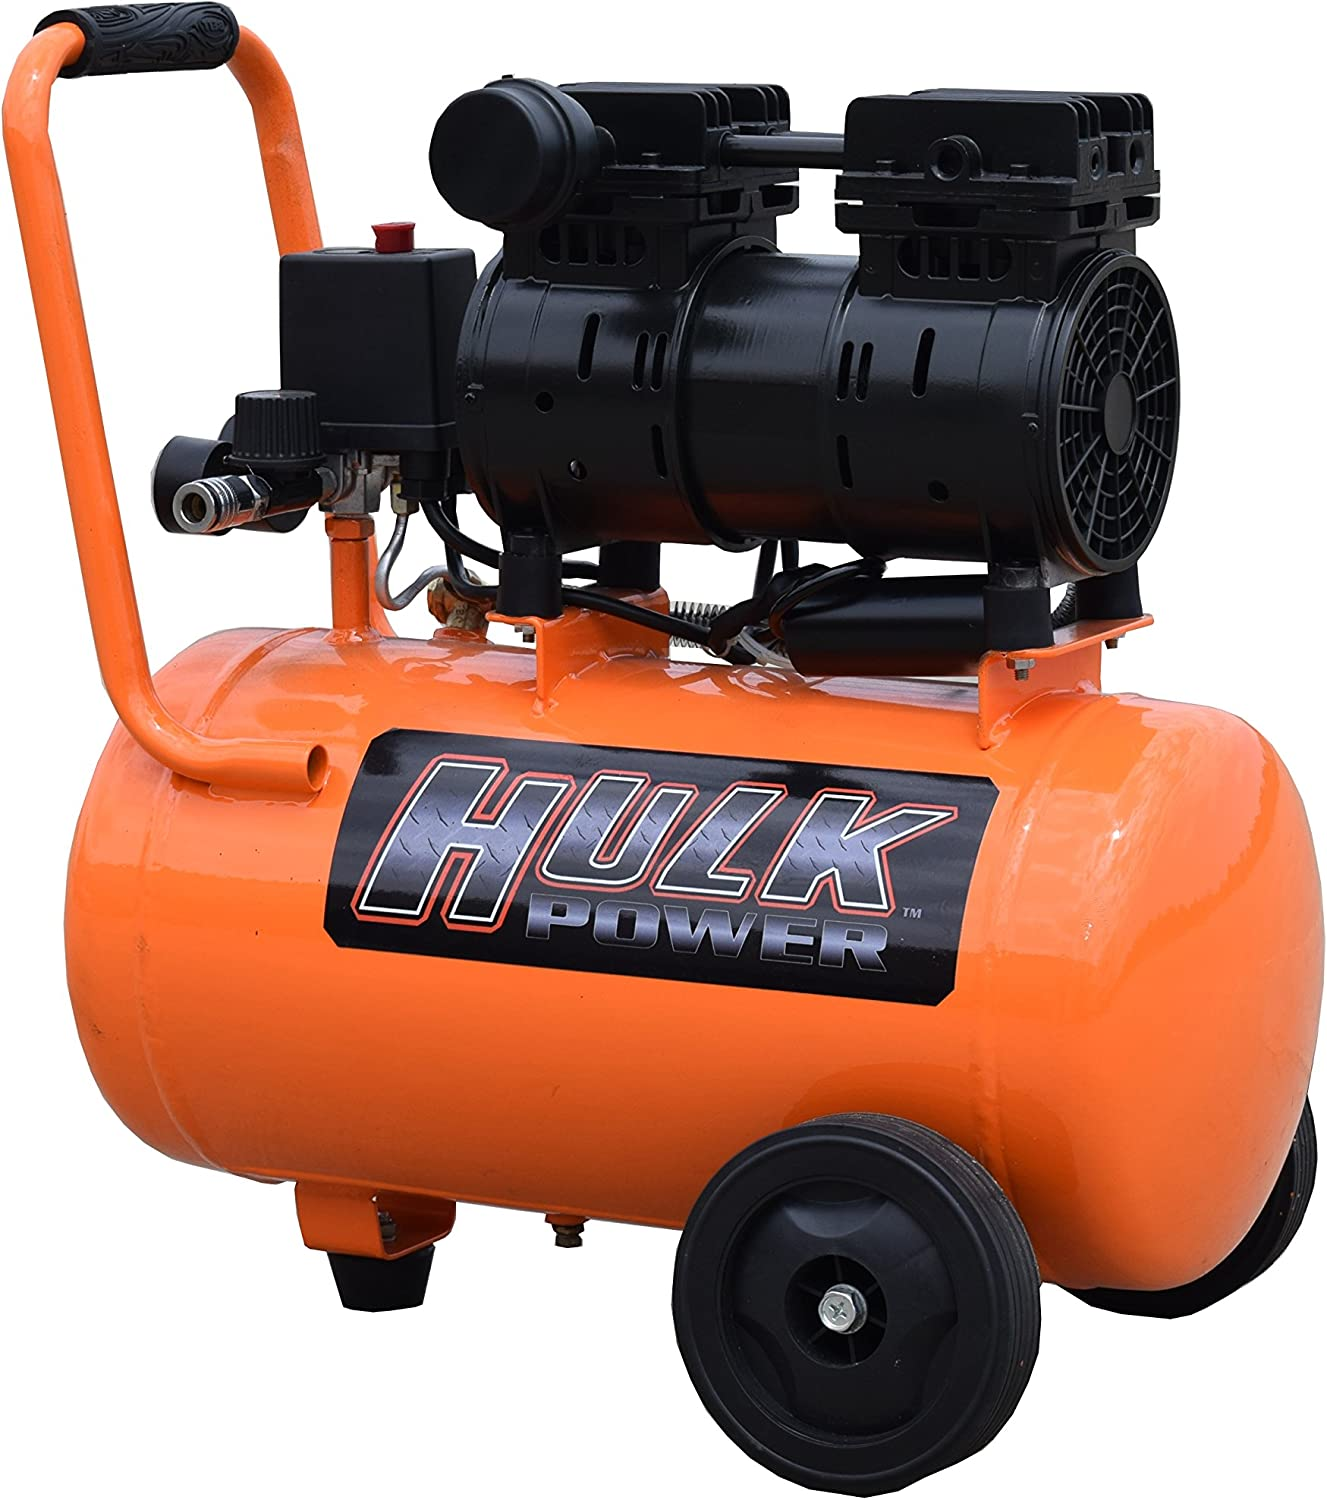 1 HP Quiet Portable Air Compressor, 120 PSI, 6 Gallon, HULK Silent Series, Model HP01P006SS by EMAX Compressor